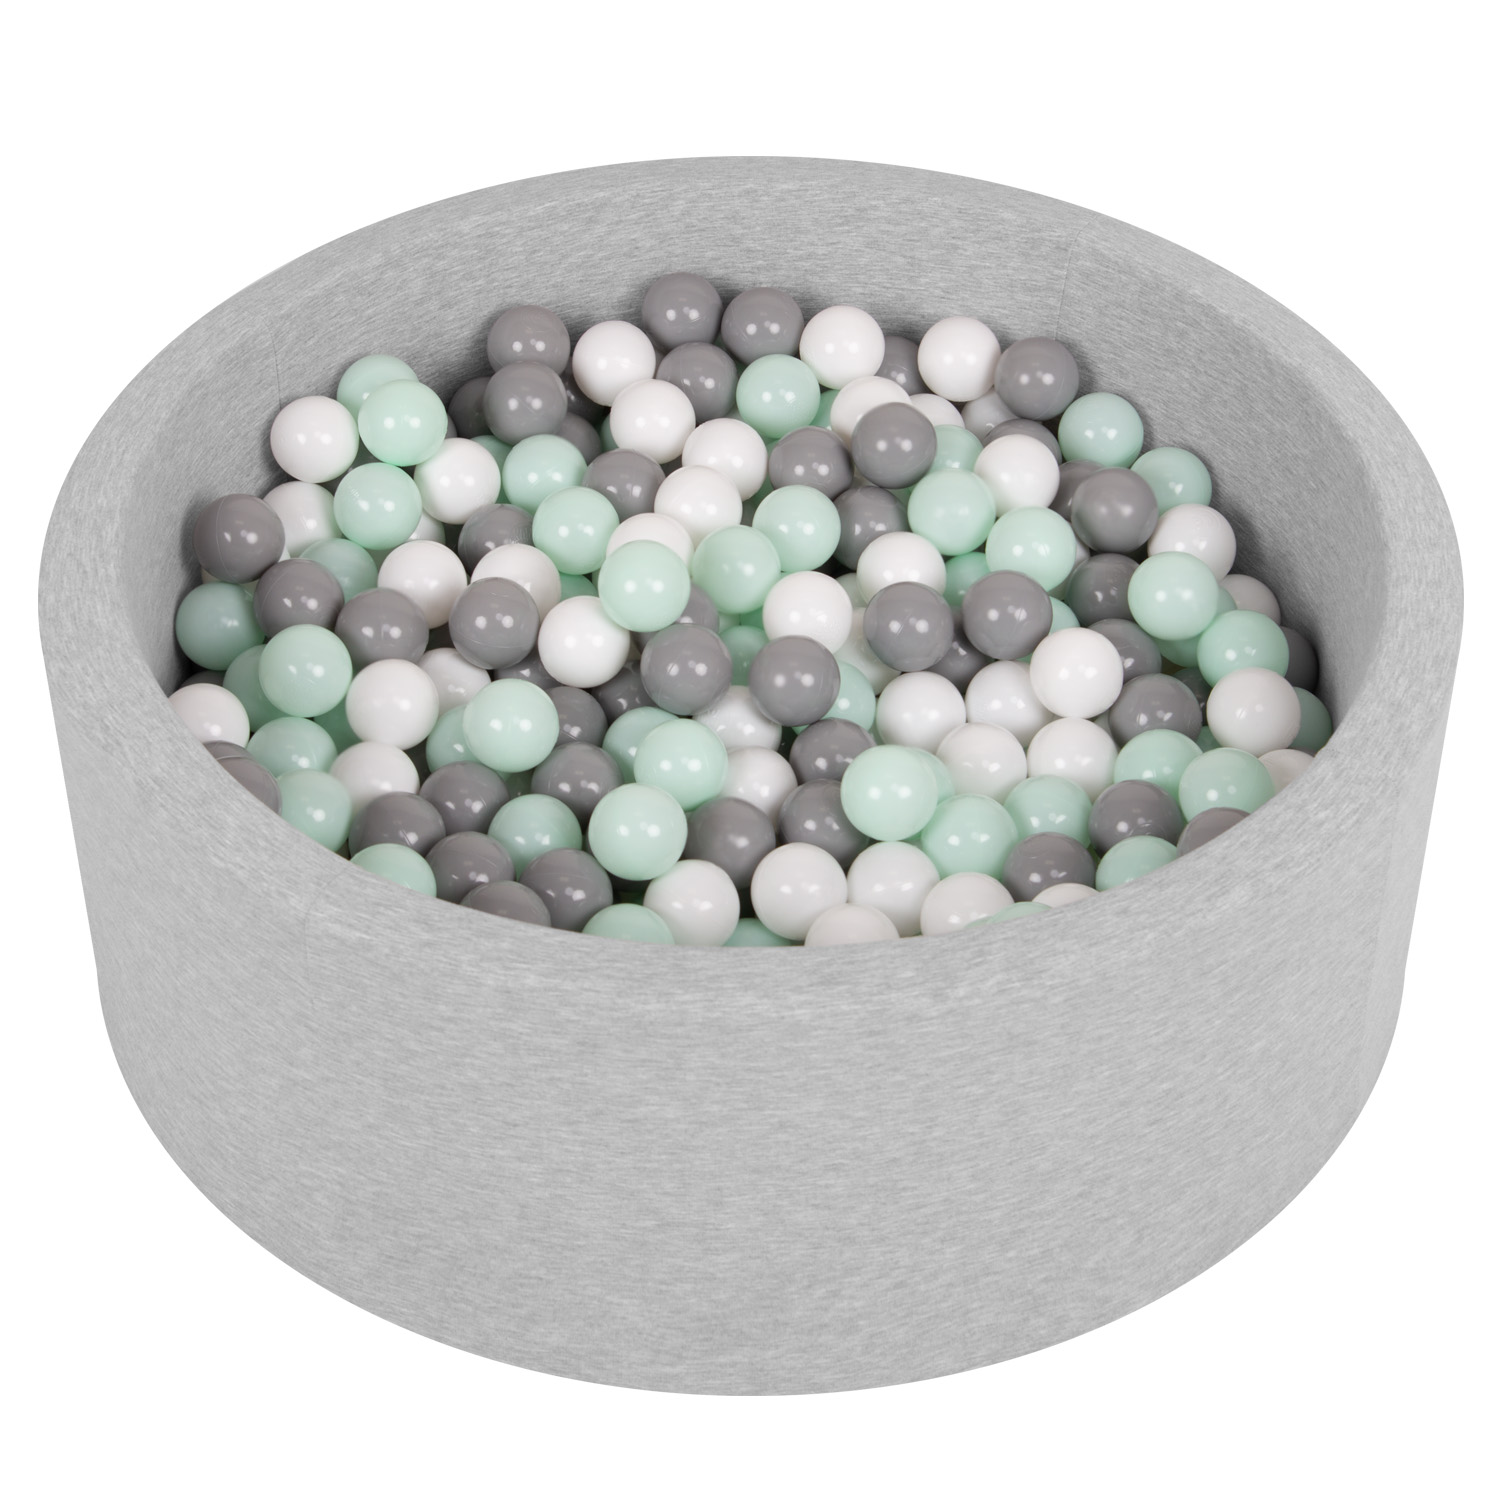 Selonis-Soft-Ball-Pit-Pool-Round-90x30cm-for-Baby-Toddler-200-Balls-Foam miniatuur 14